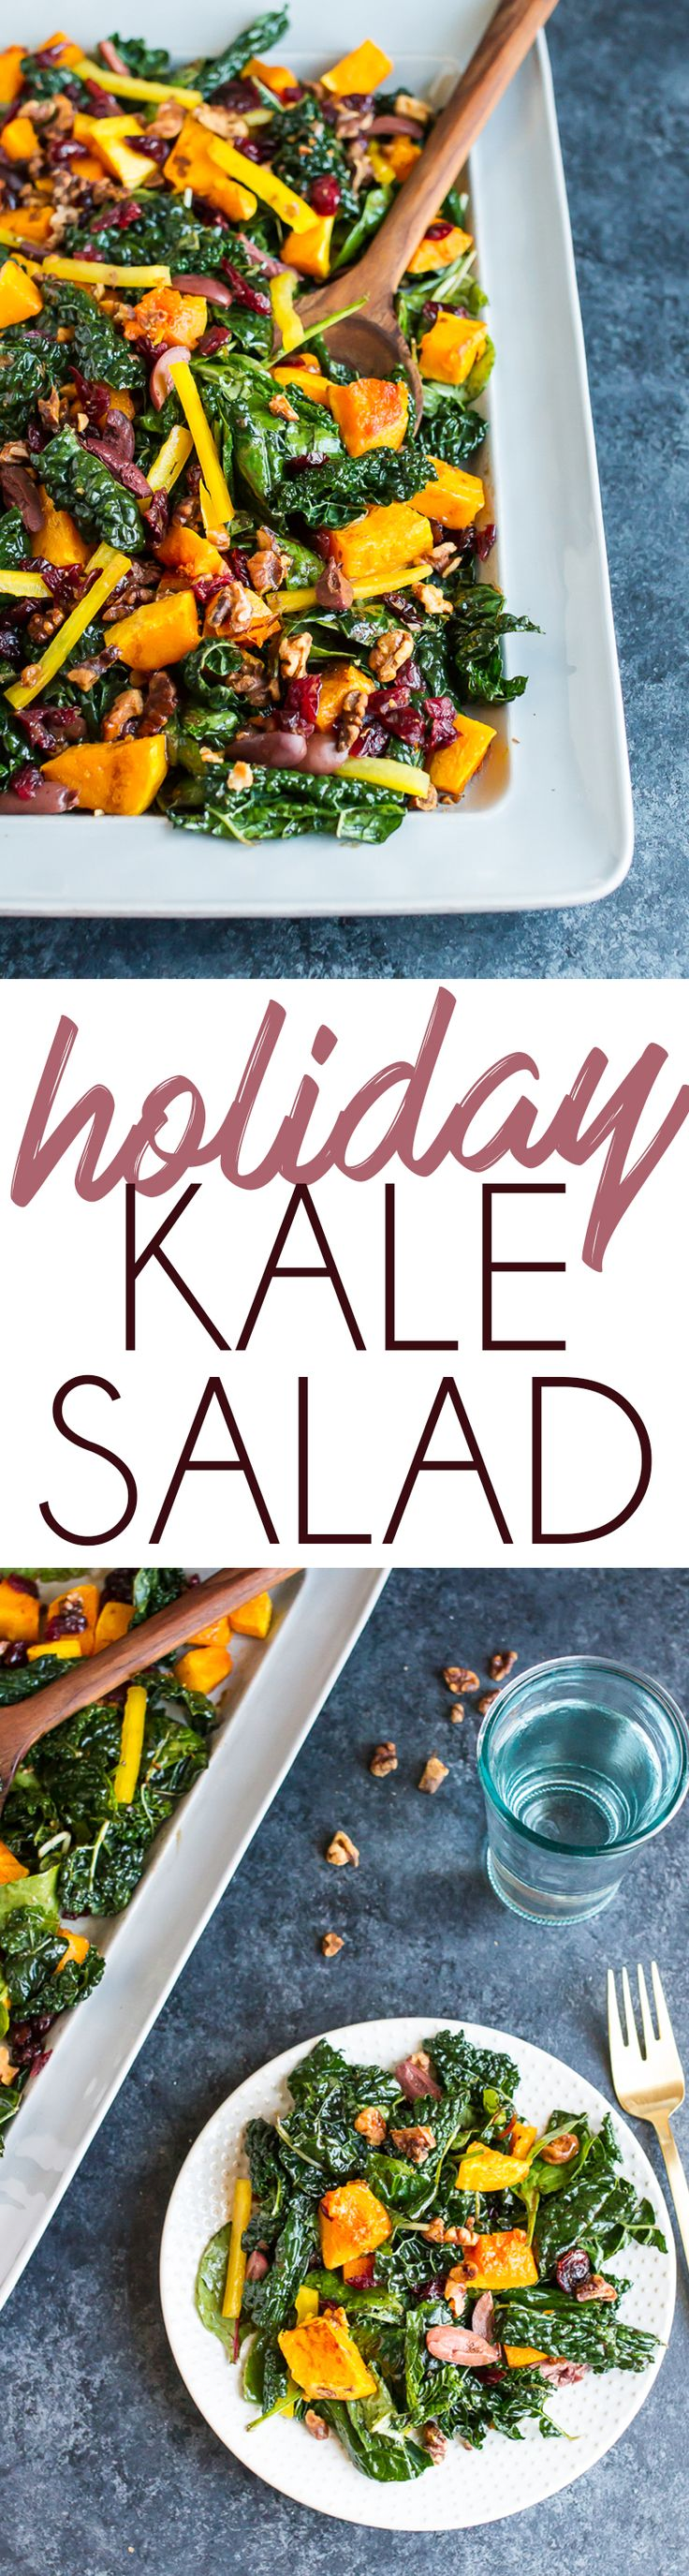 Holiday Kale Salad with Roasted Butternut Squash, Kalamata Olives, Walnuts and Dried Cranberries.